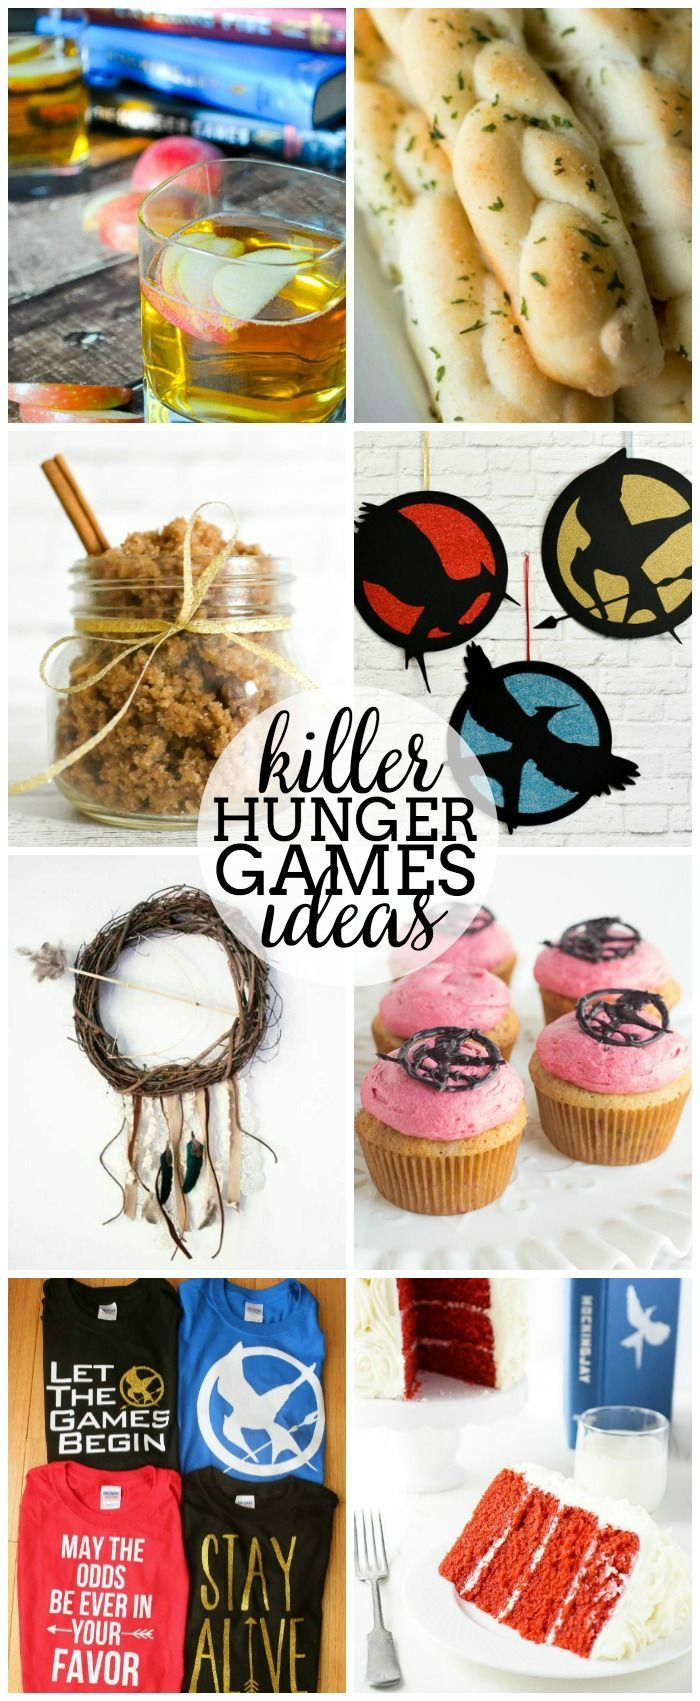 Have a secret crush on Jennifer Lawrence or Hunger Games quotes running through your head? You're gonna love this. This ultimate collection of 50 Hunger Games party ideas is the perfect way to celebrate the Hunger Games Mockingjay Part 2 release! Everythi